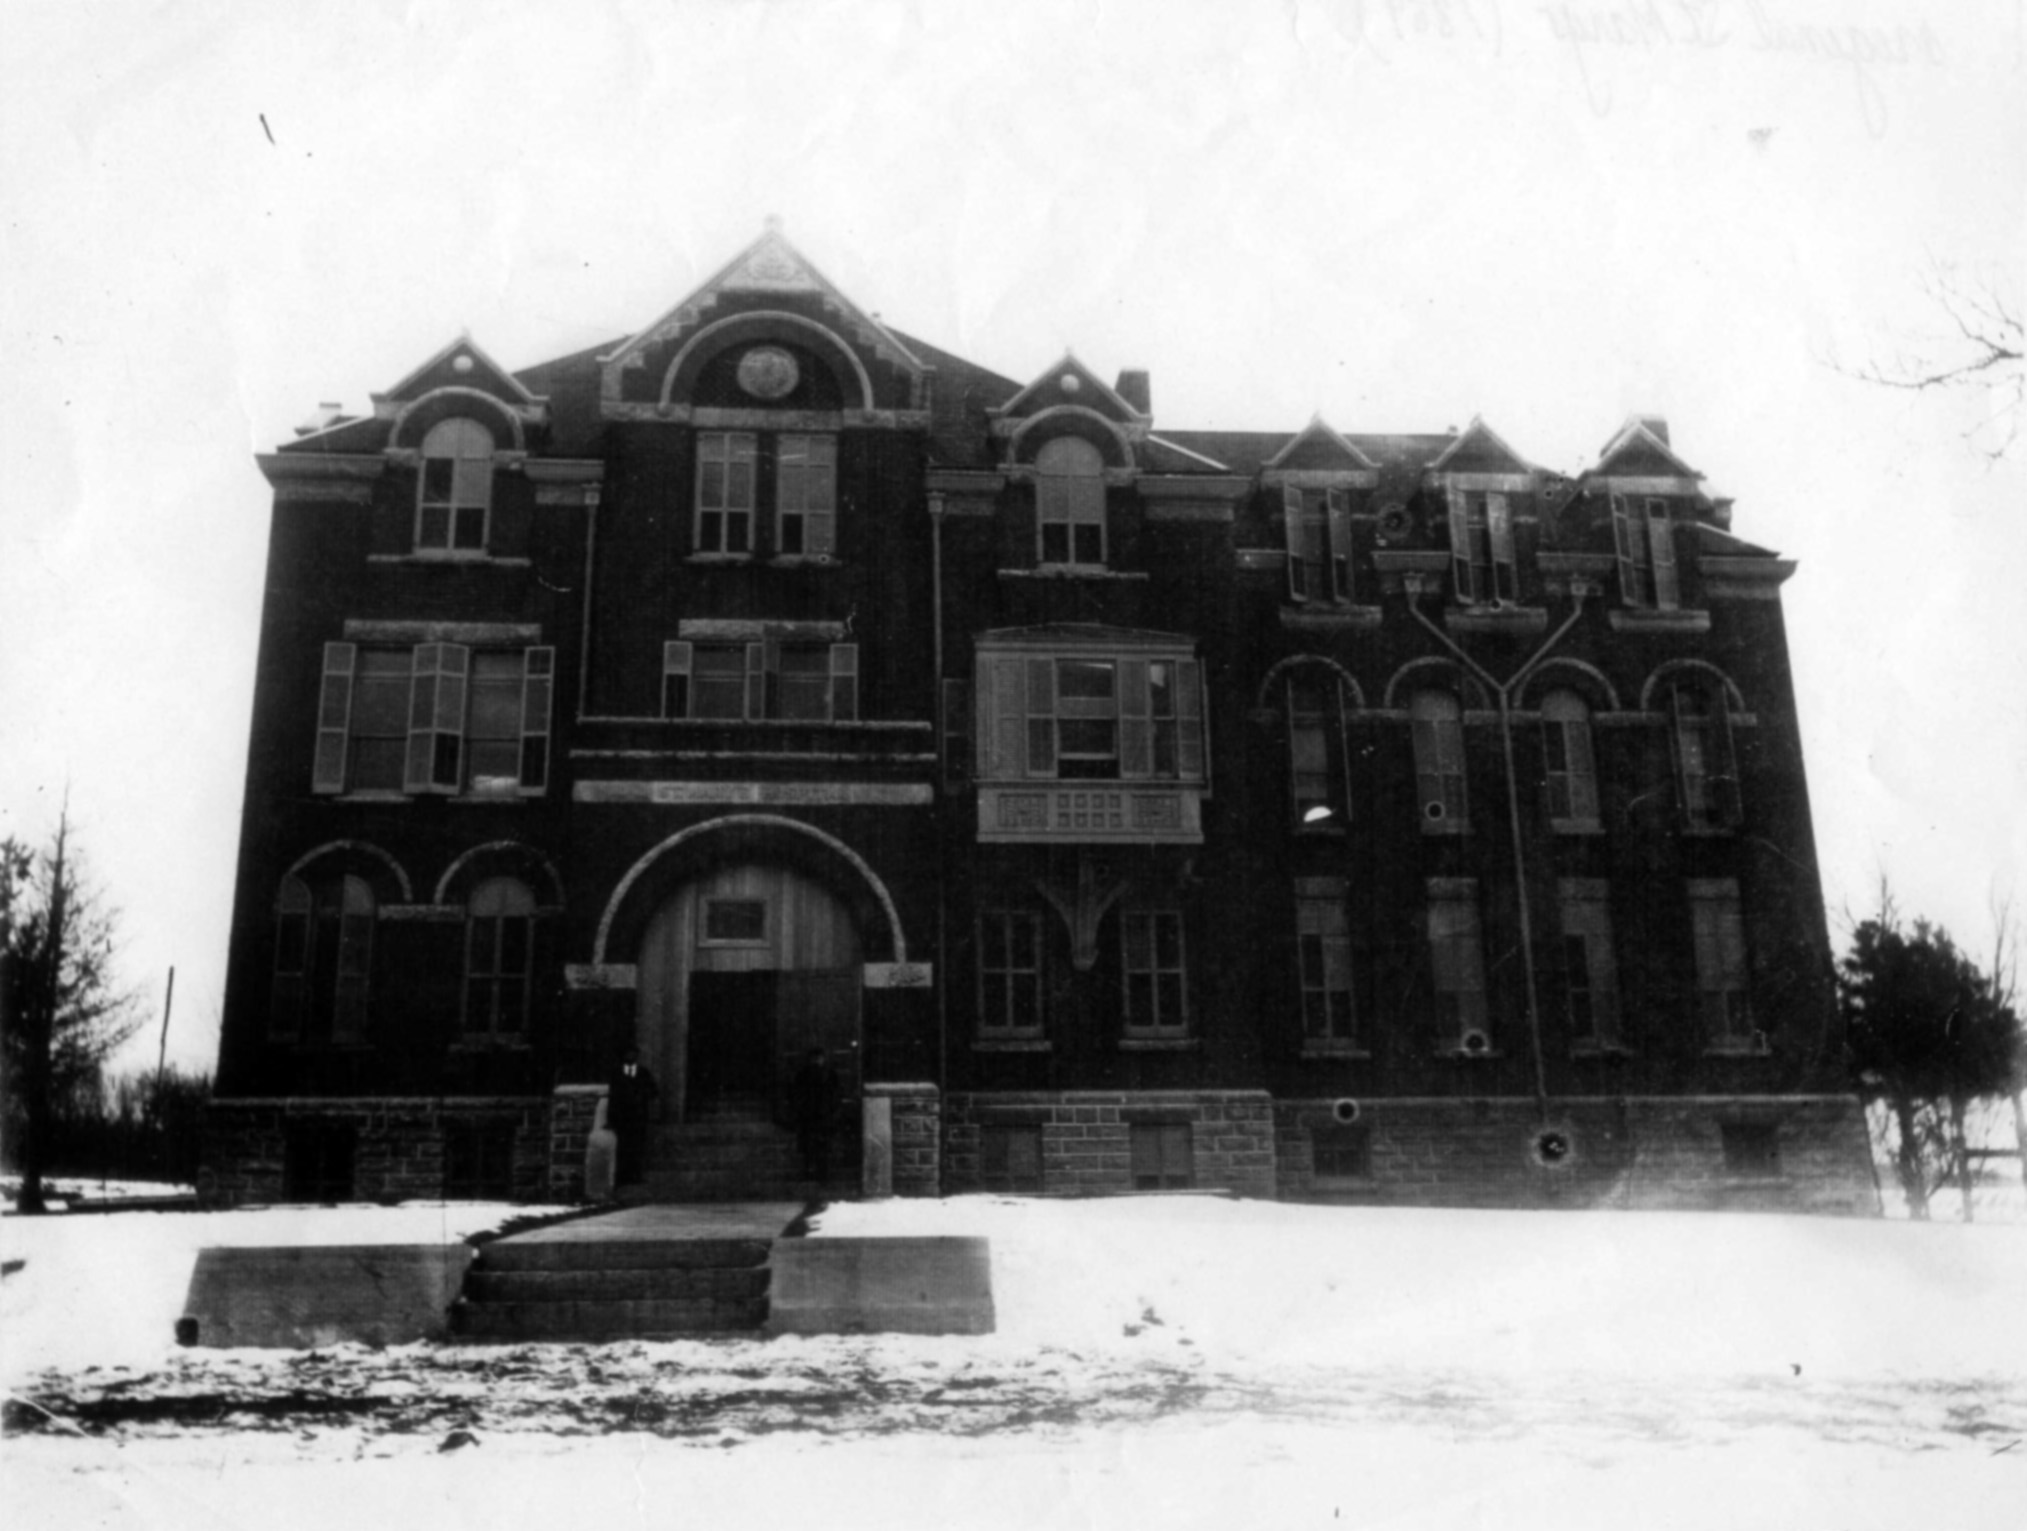 Photo: St. Marys Hospital / 1889 / History Center of Olmsted County